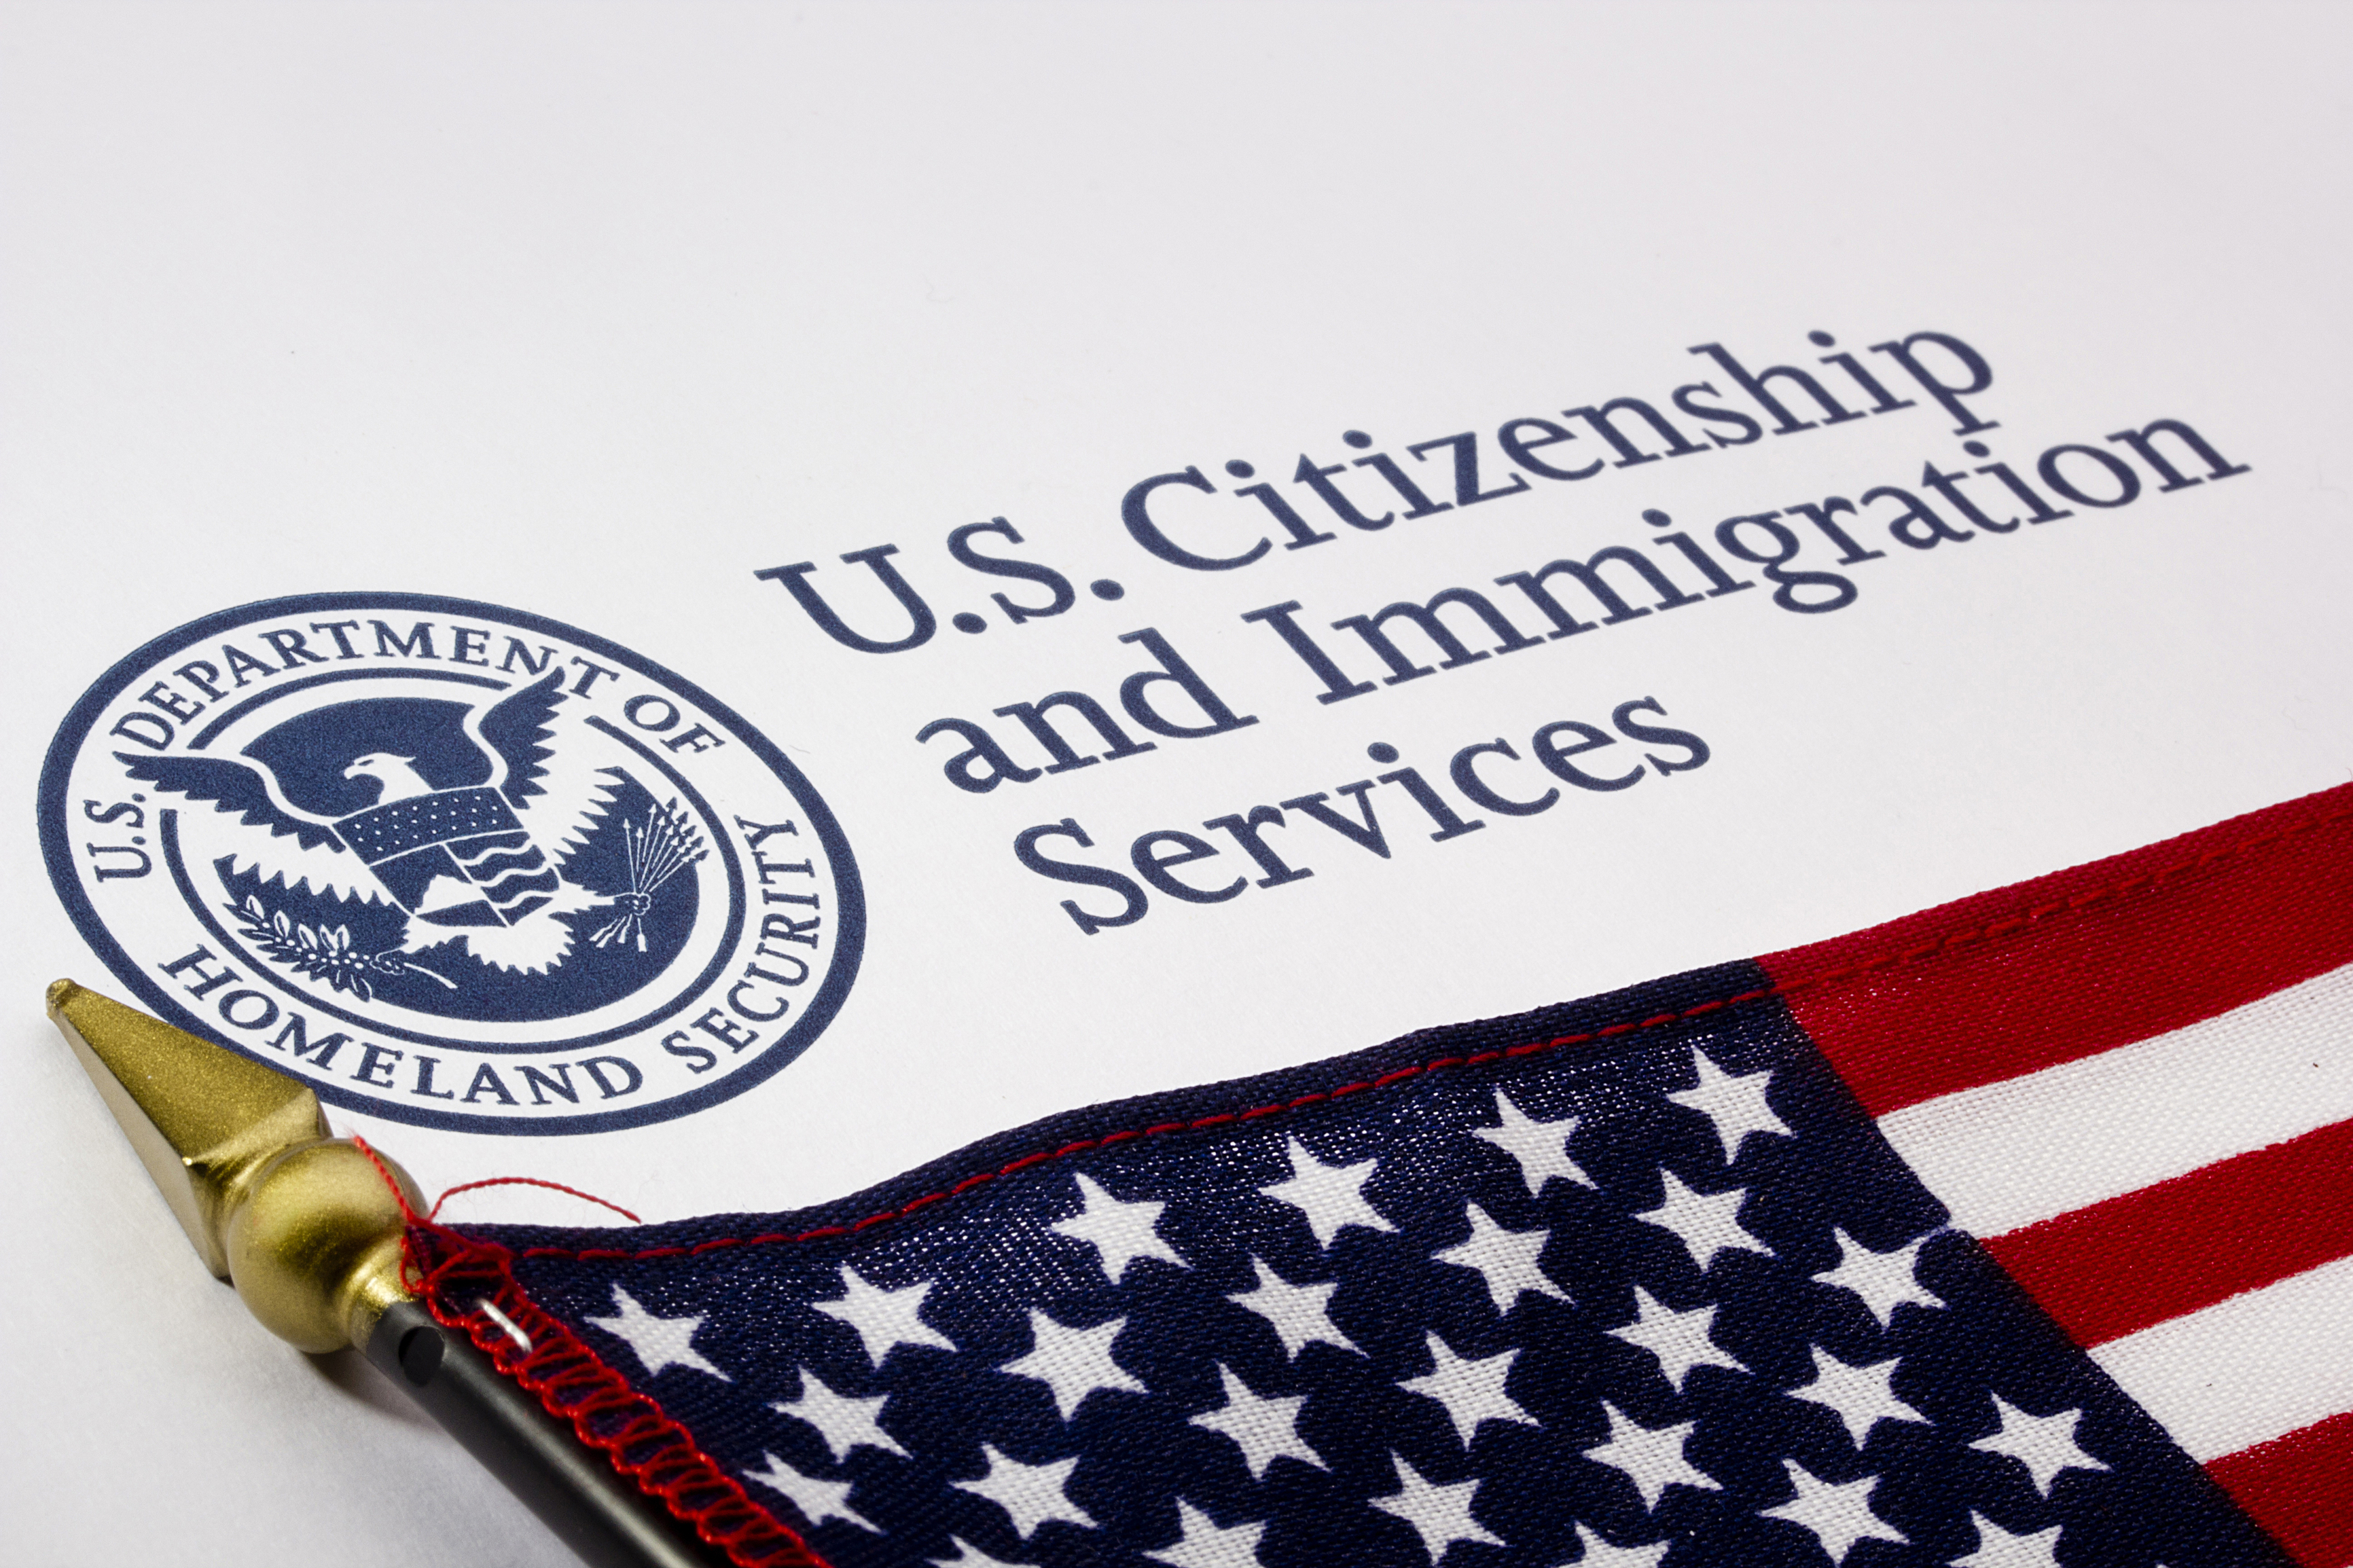 What Makes You Eligible For Eb-5 Immigrant Investor Visa?